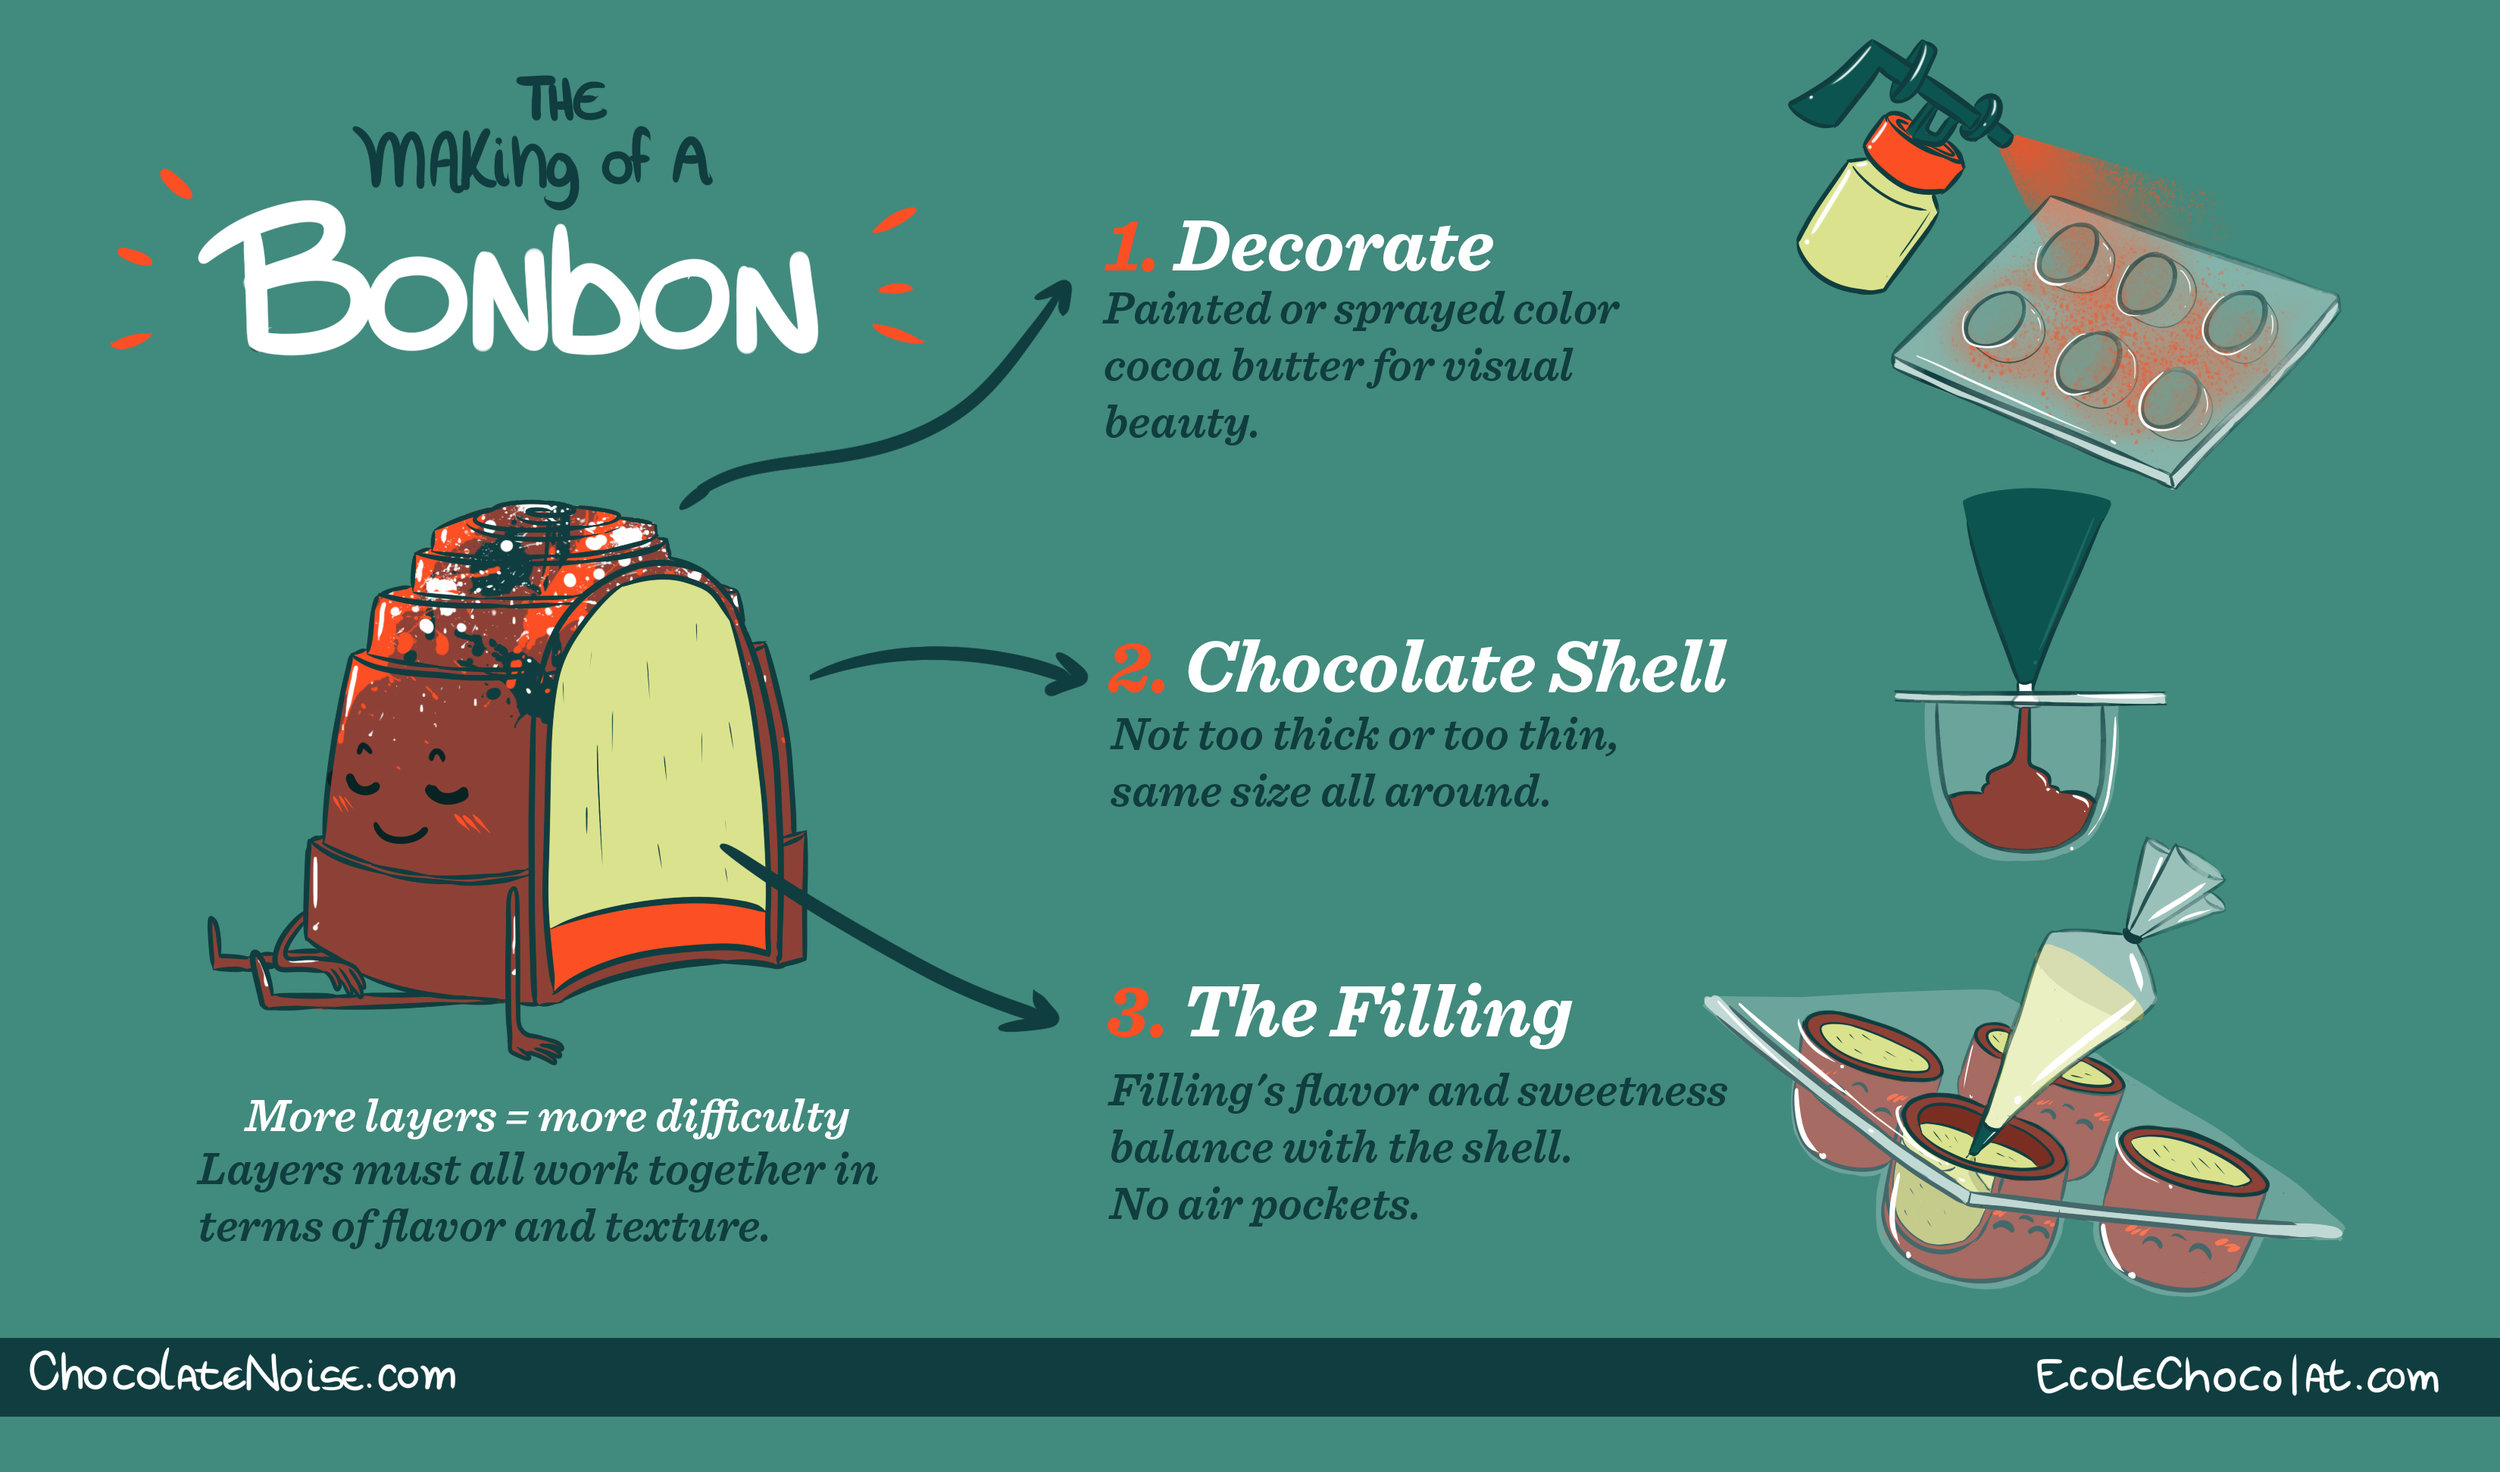 One of the cartoons I made with Ecole Chocolat a few years ago to illustrate the chocolate-making process